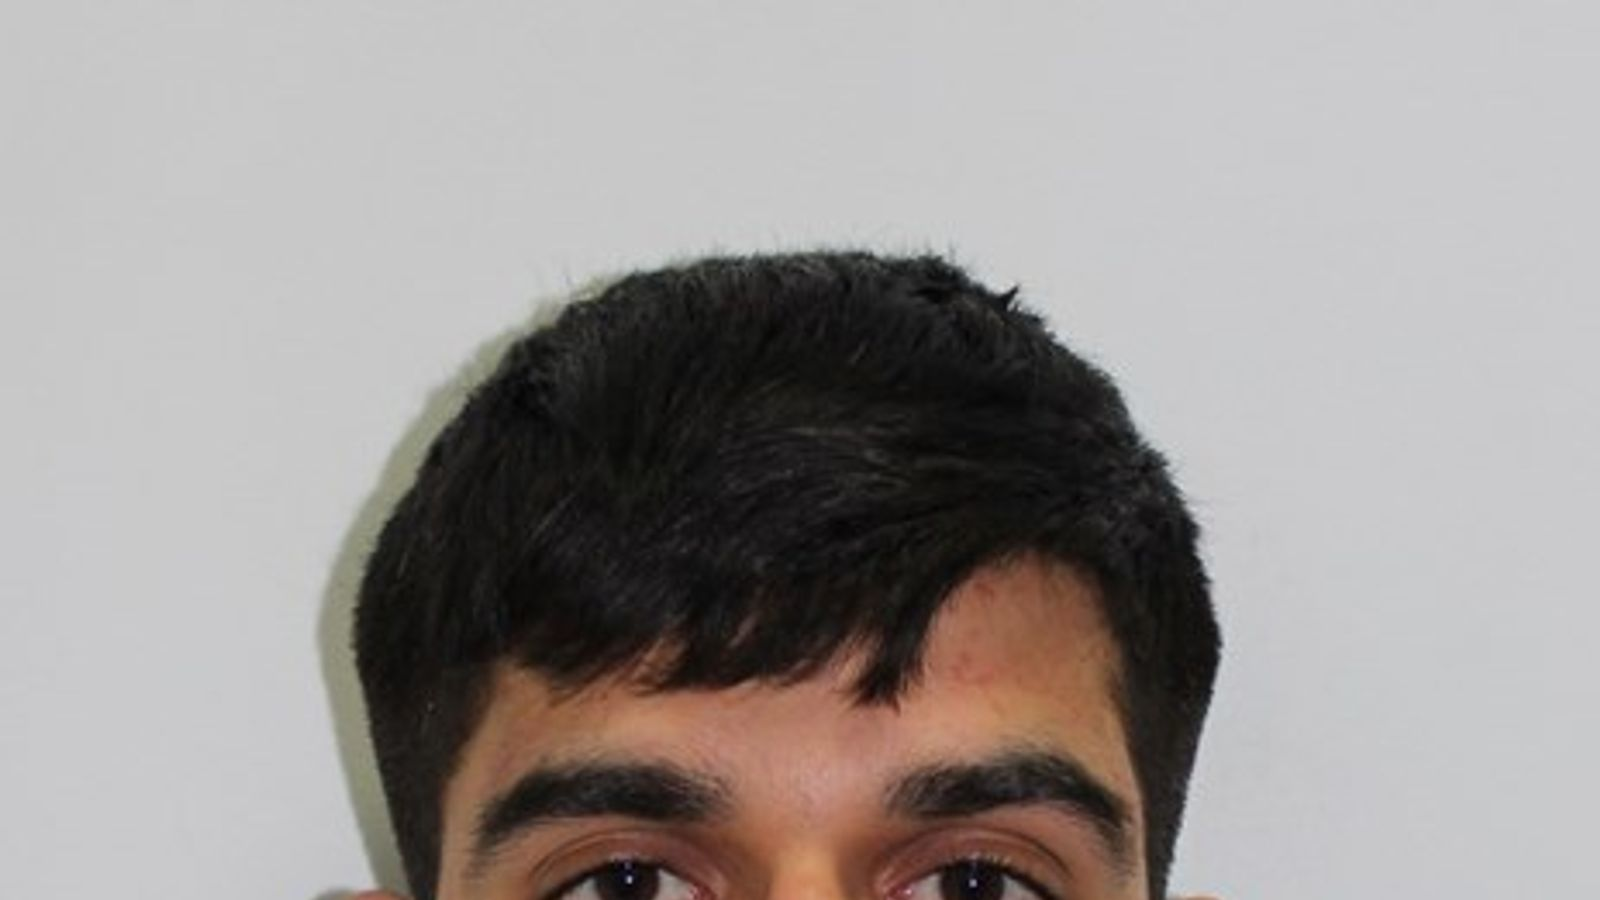 Hacker who blackmailed porn viewers told to sell Rolex and repay £270k